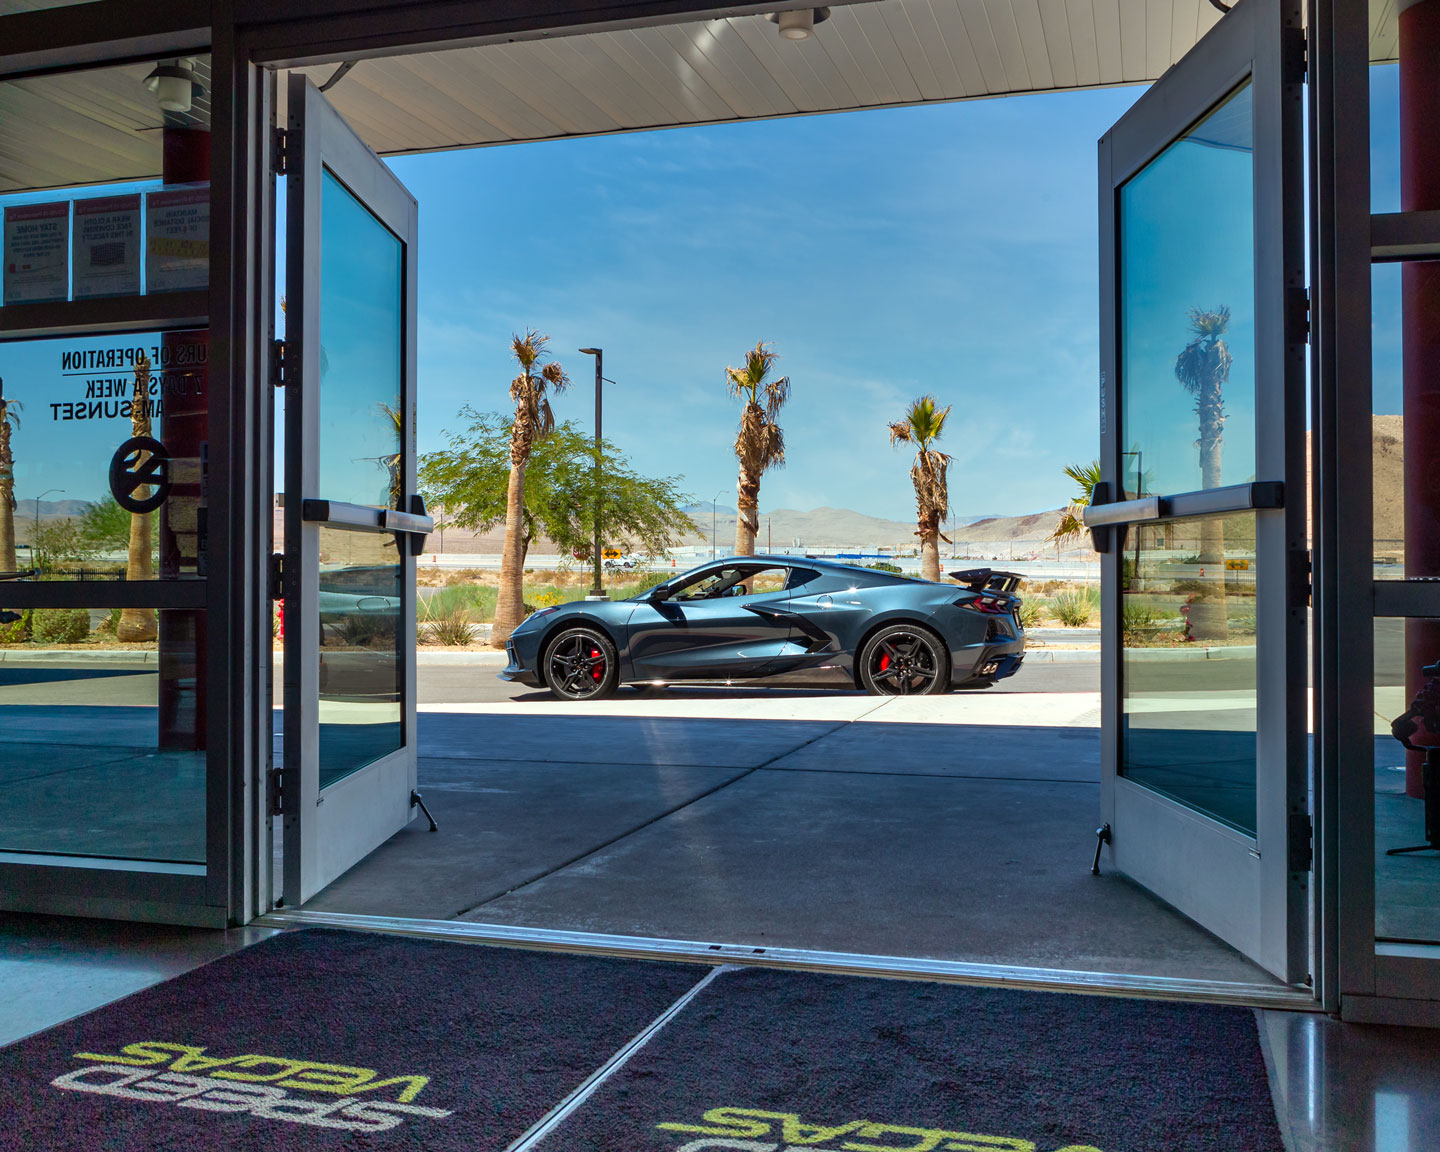 XPEL Helps Protect Supercars in Las Vegas - Speed Vegas - Chevy C8 Corvette